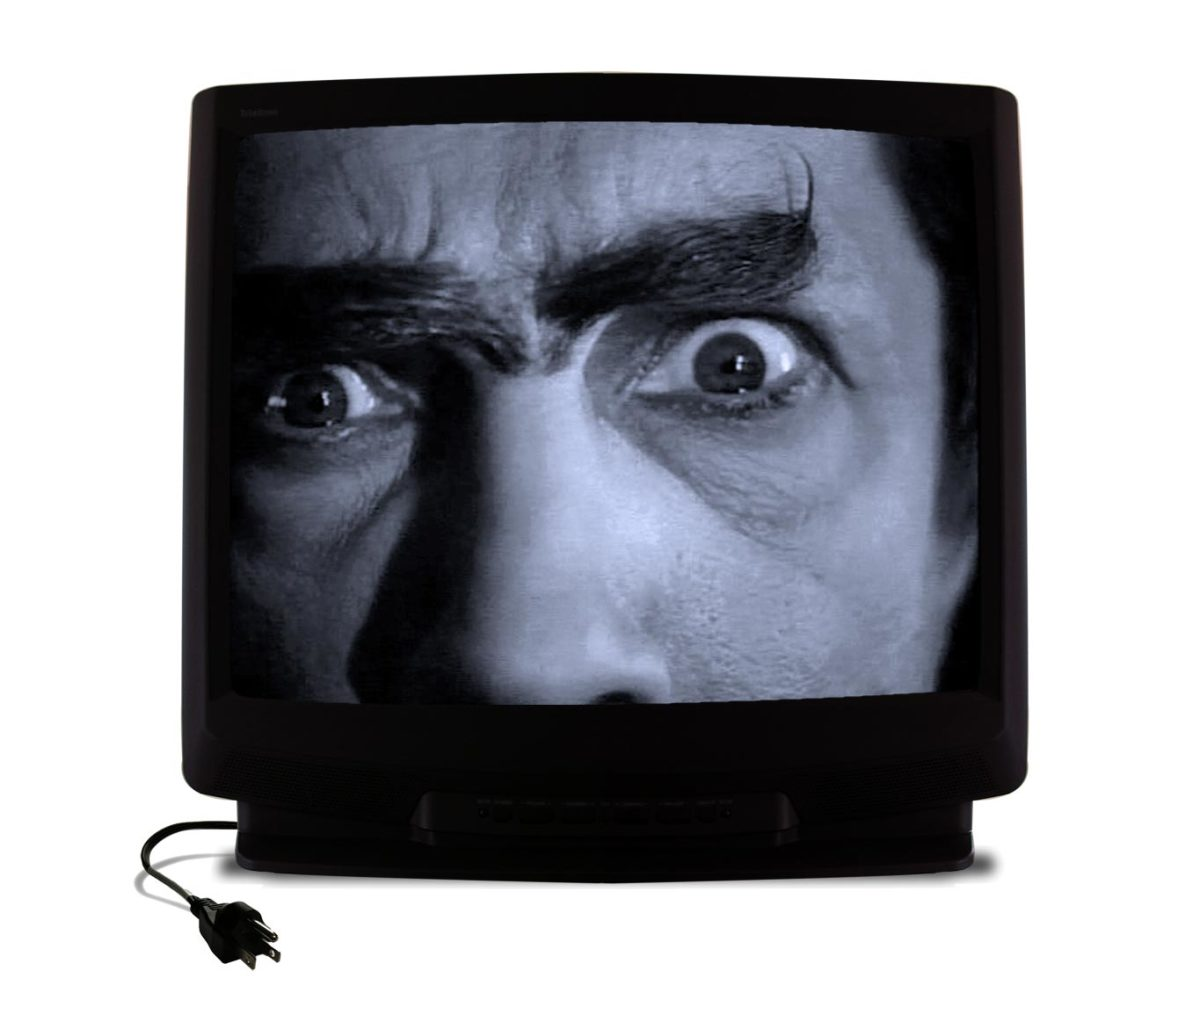 If you've unplugged the tv and the scary guy is still staring at you, there's nothing I can do to help. Sorry.